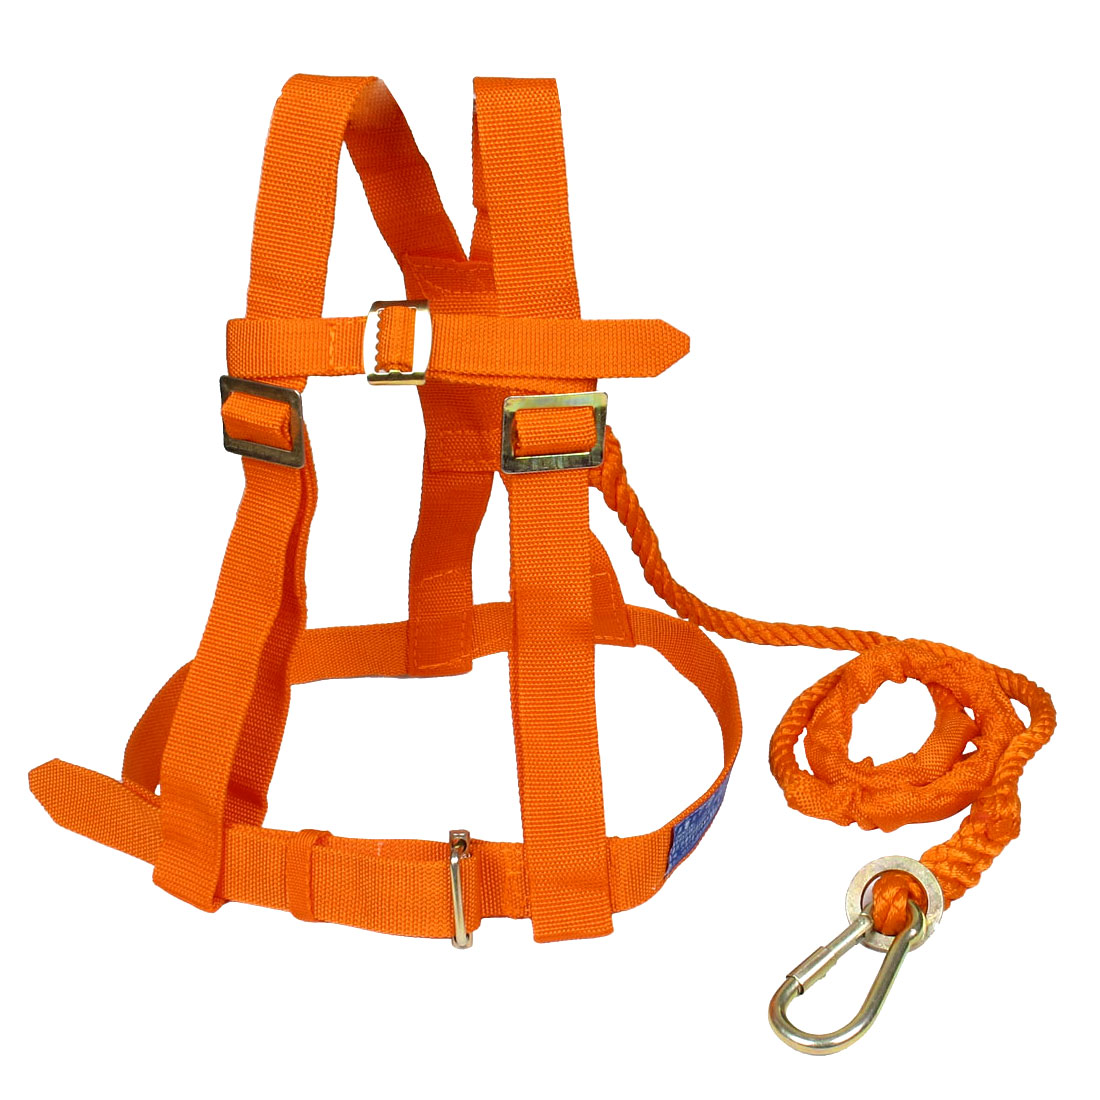 Climing Mountain Orange Comfort Tech Premium Grade Harness 5Ft 1.53M 100Kg